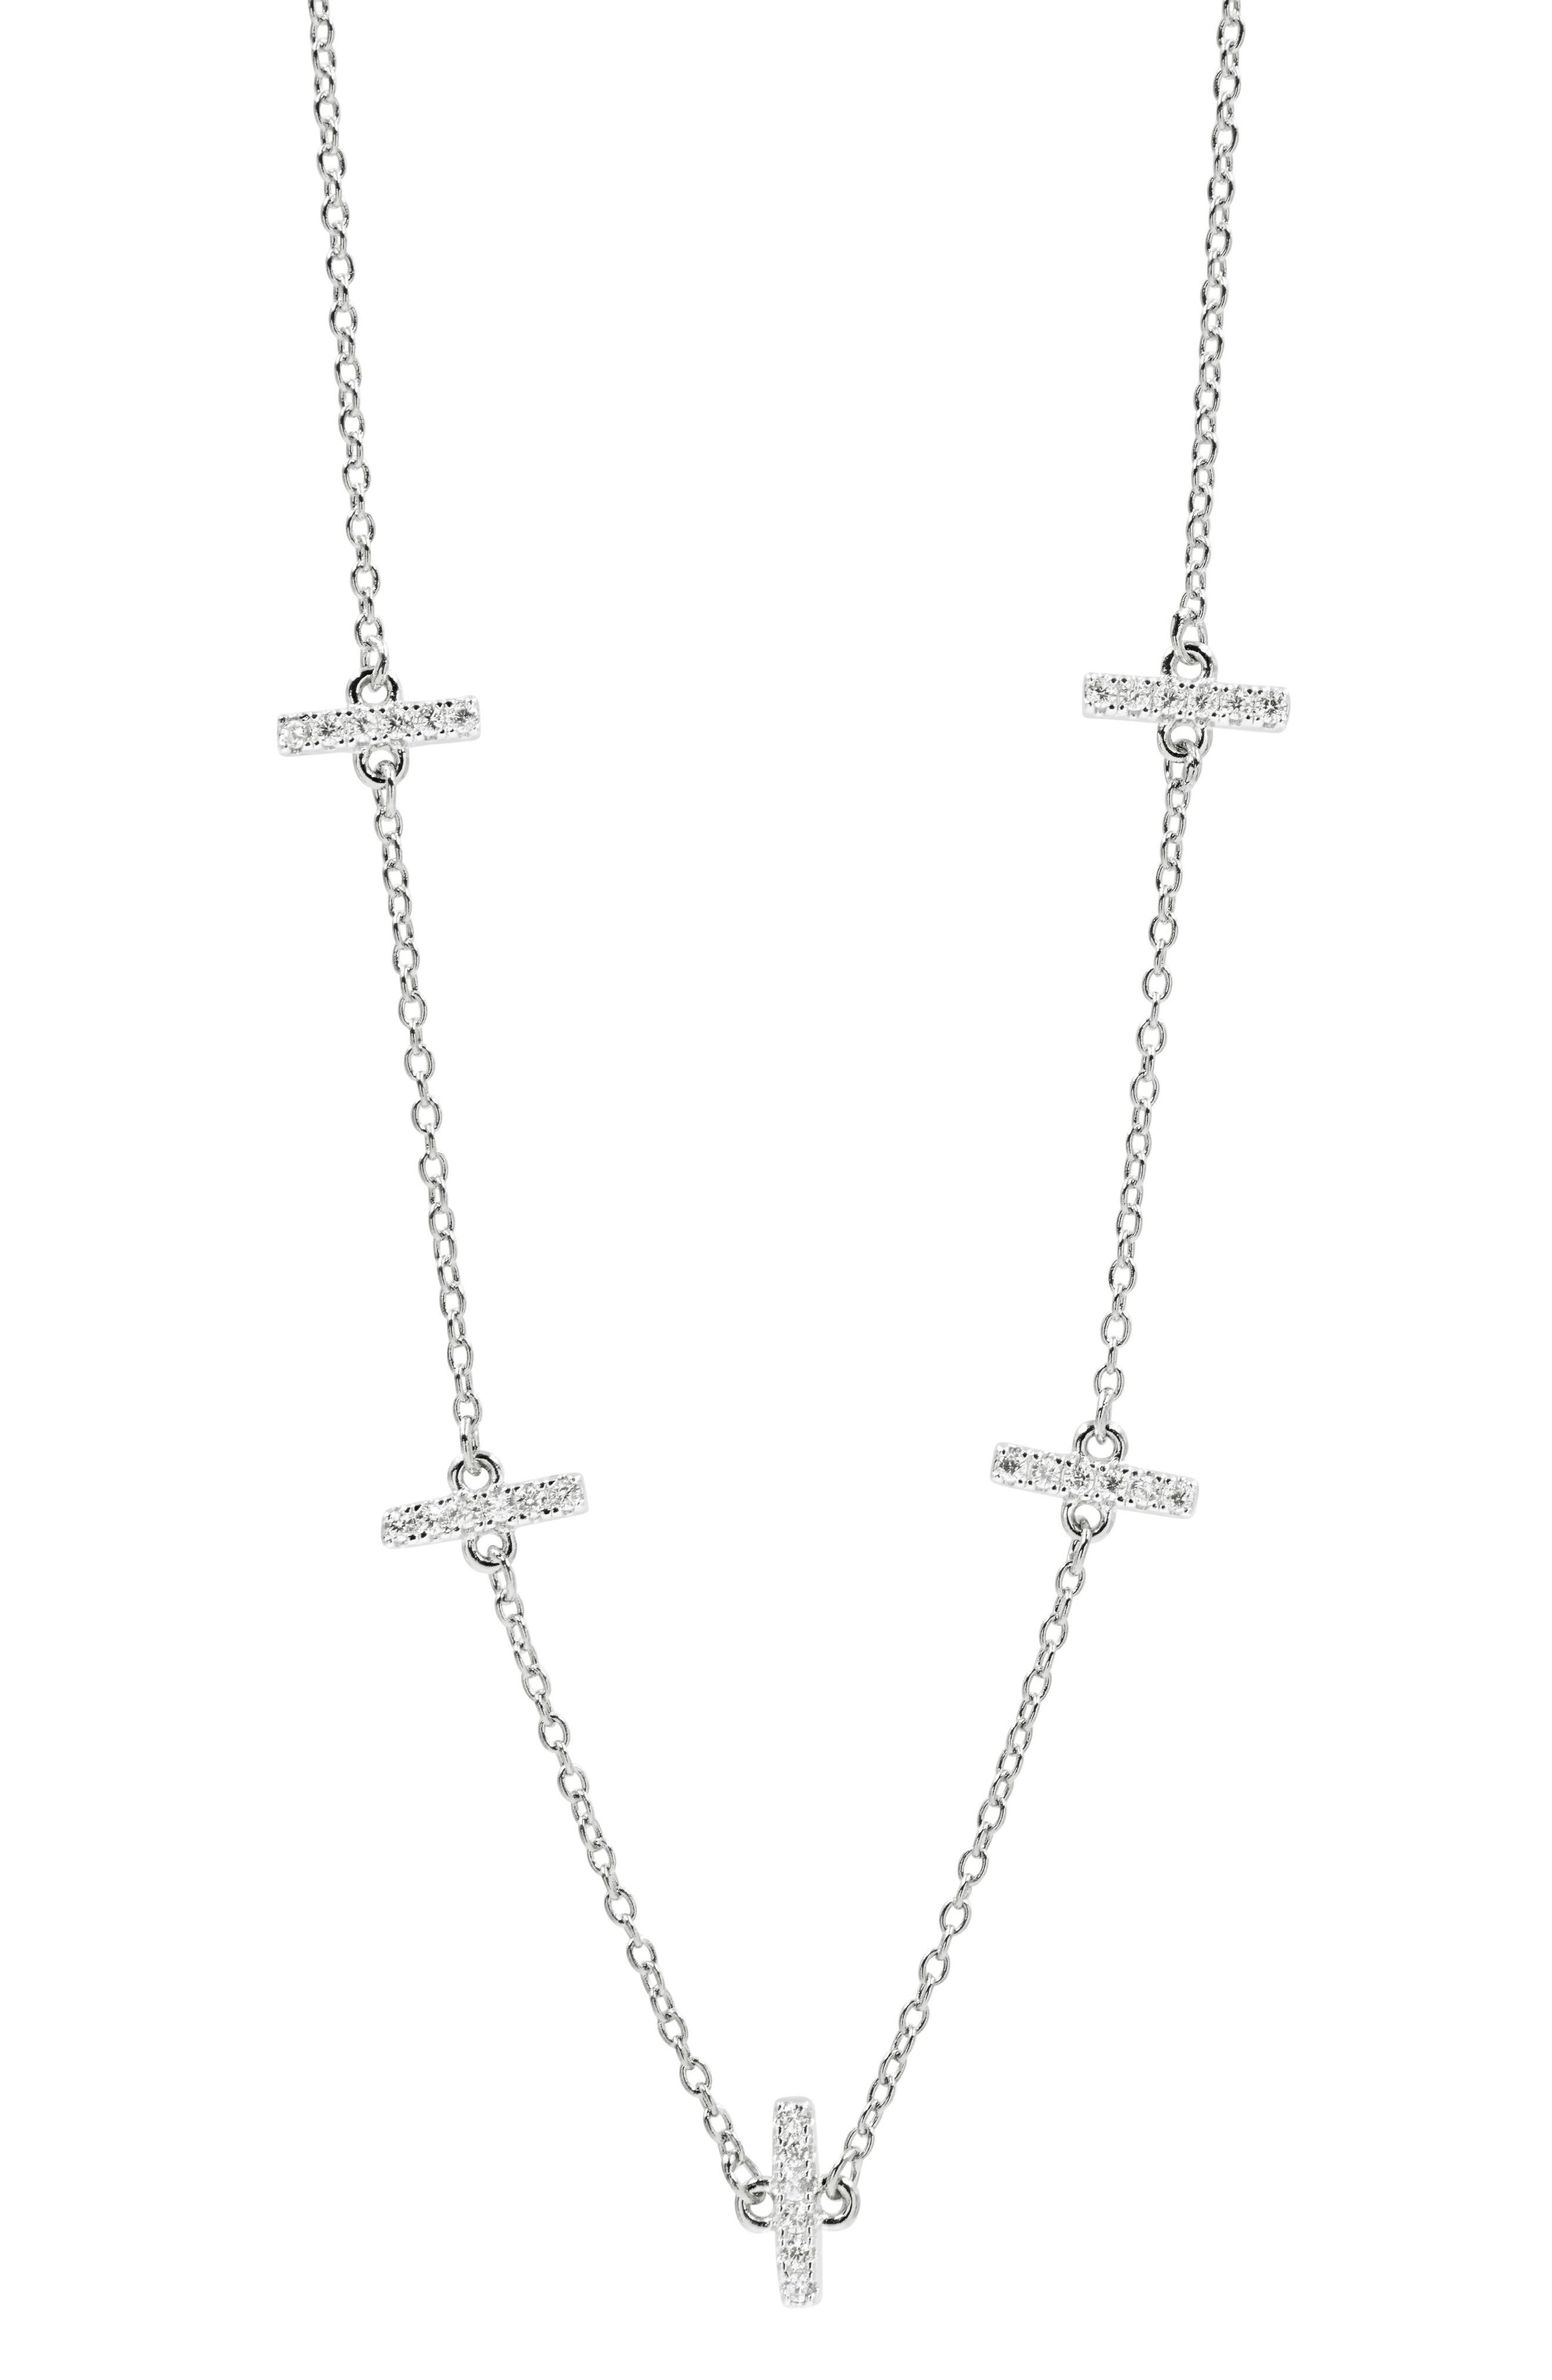 Radiance Crystal Station Necklace,                             Main thumbnail 1, color,                             SILVER